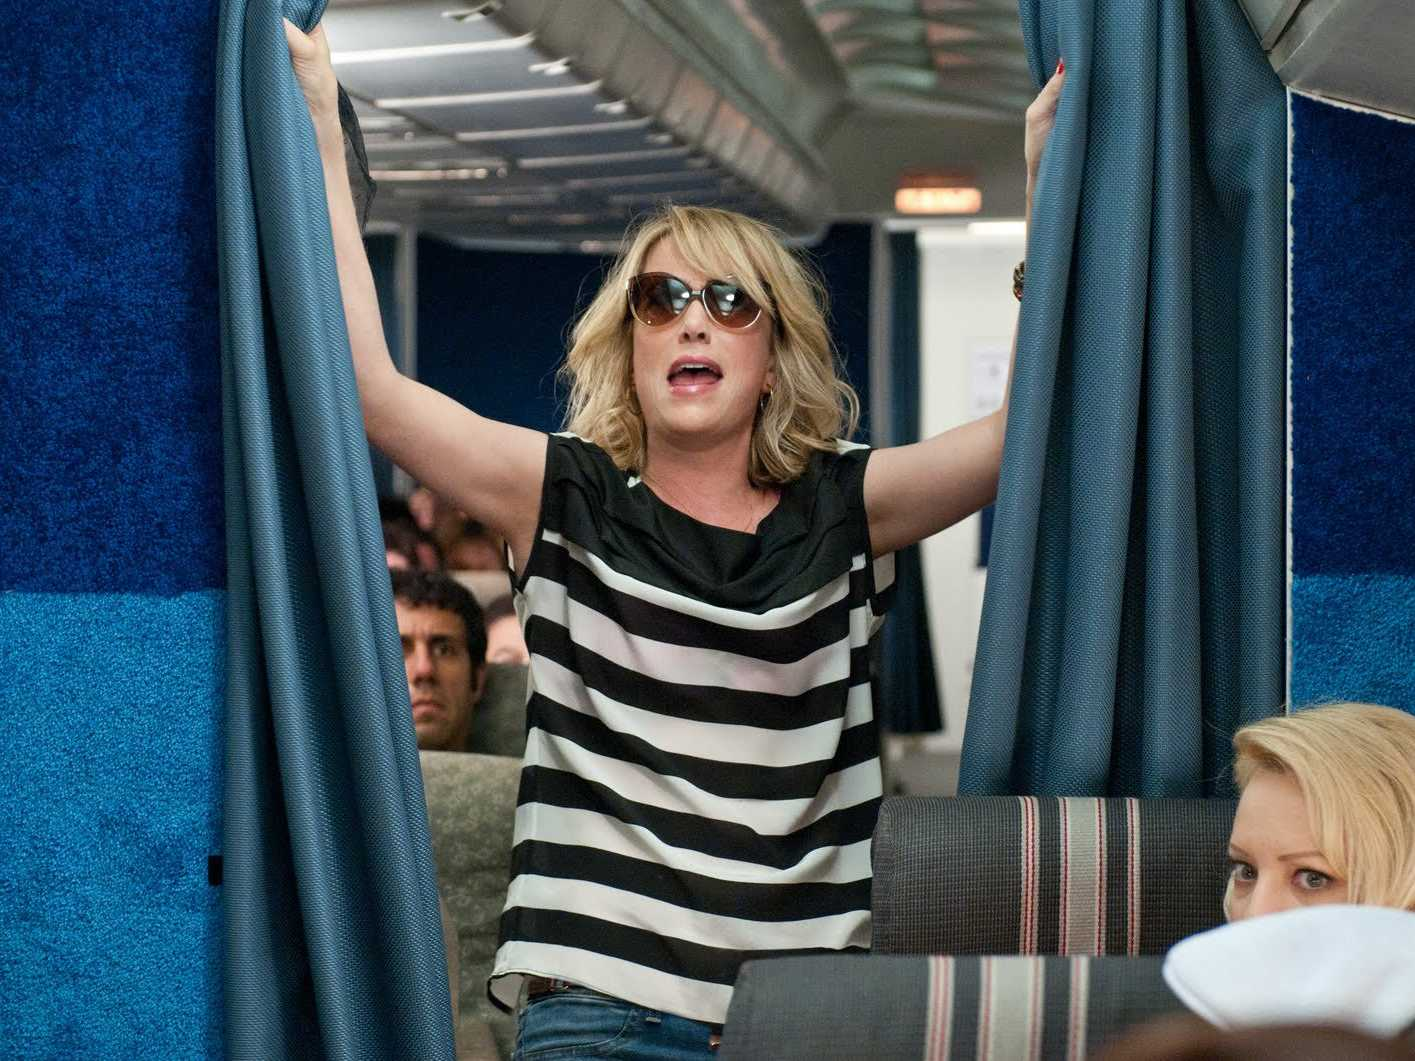 Bridesmaids airplane scene